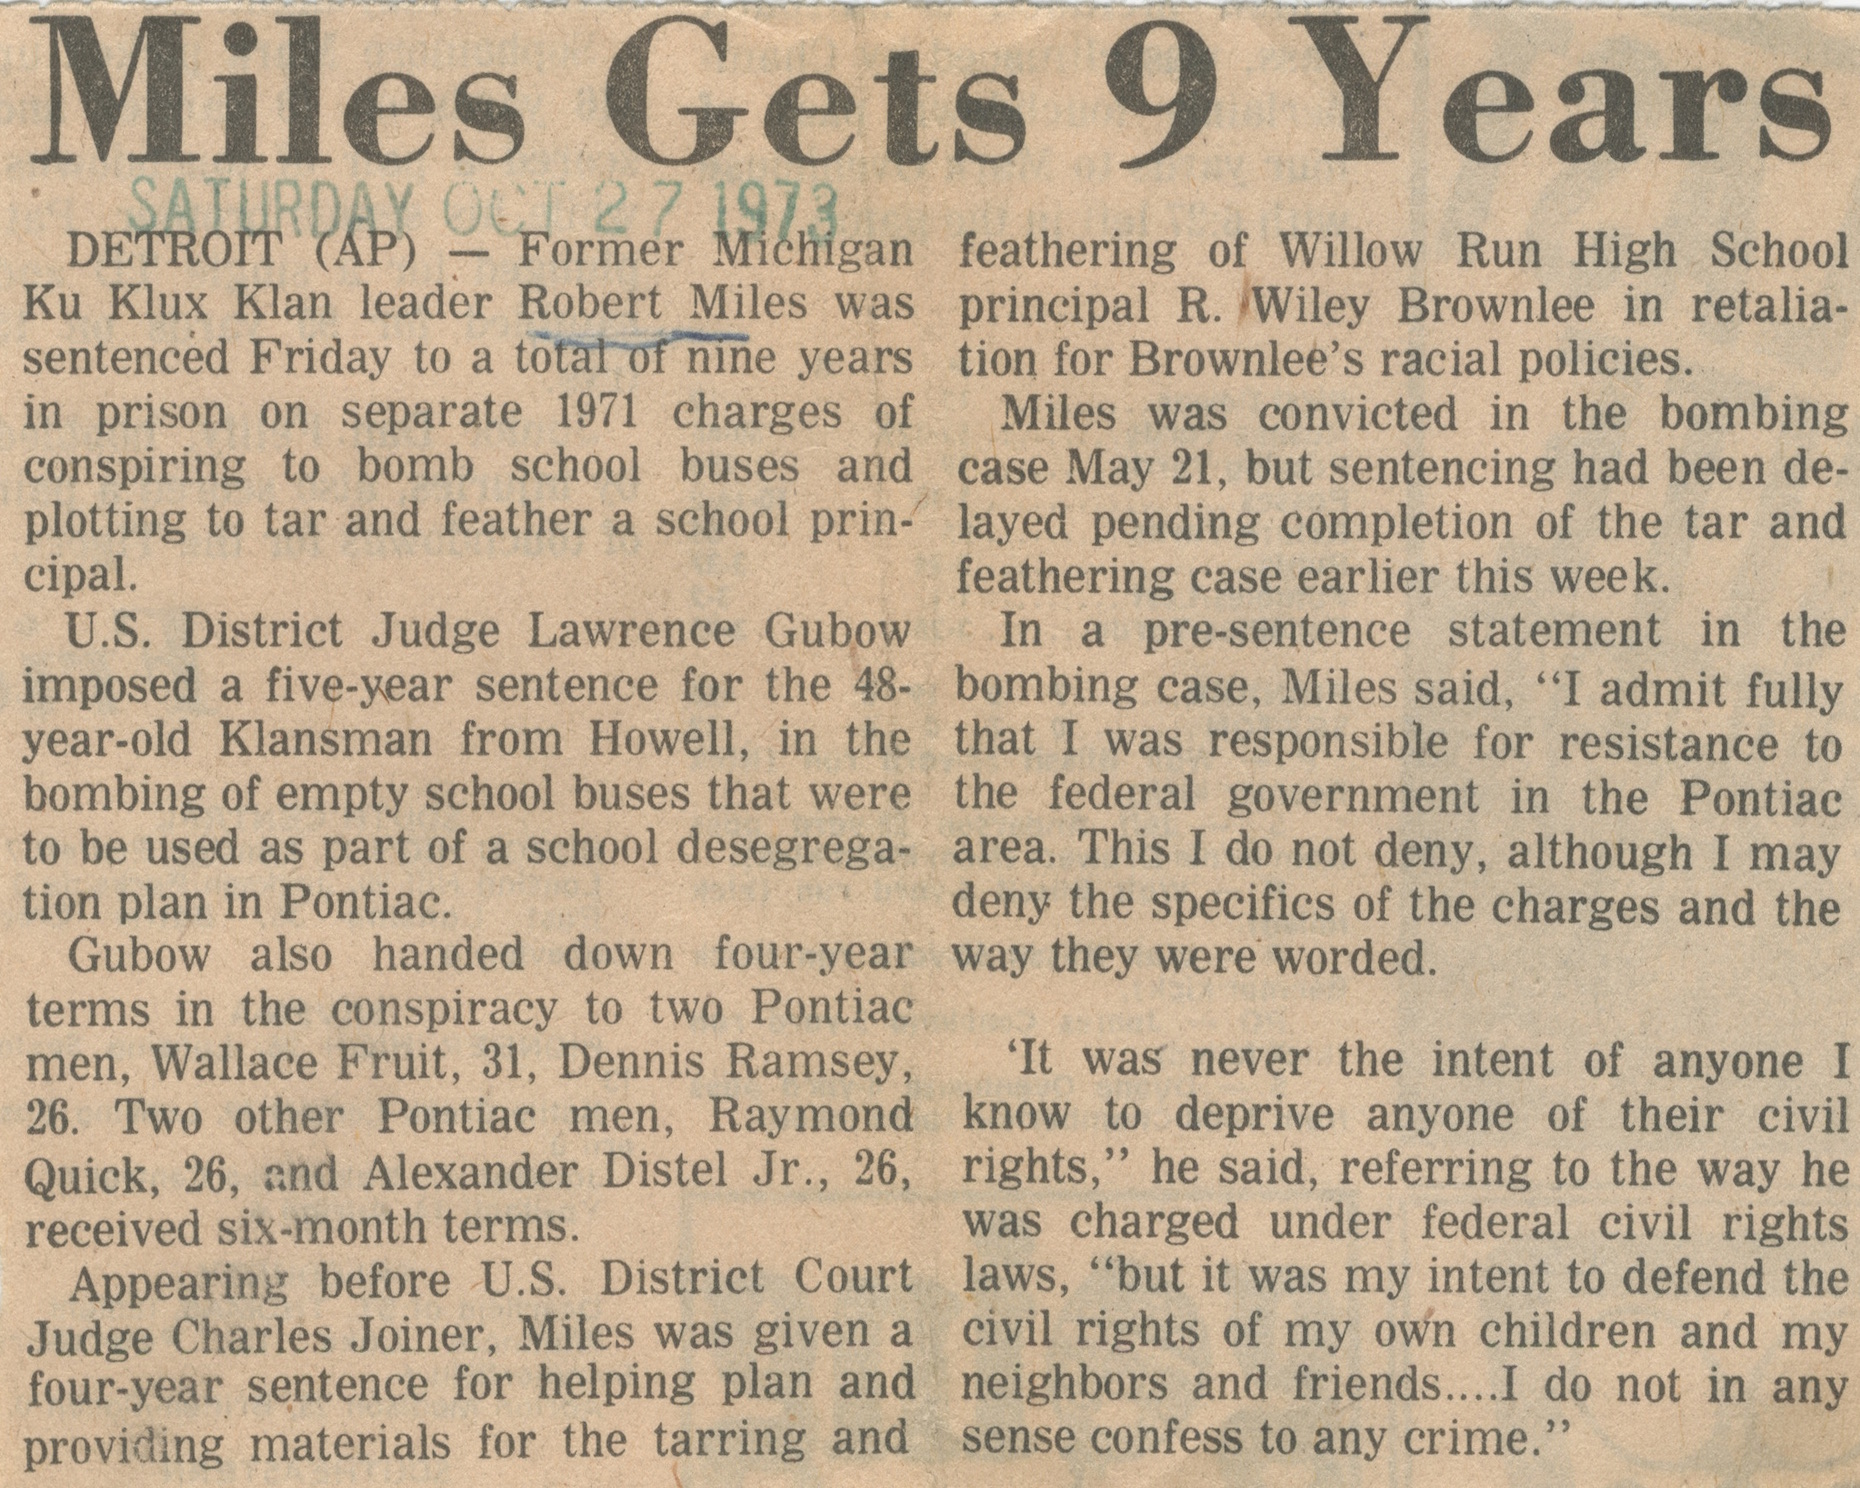 Miles Gets 9 Years image